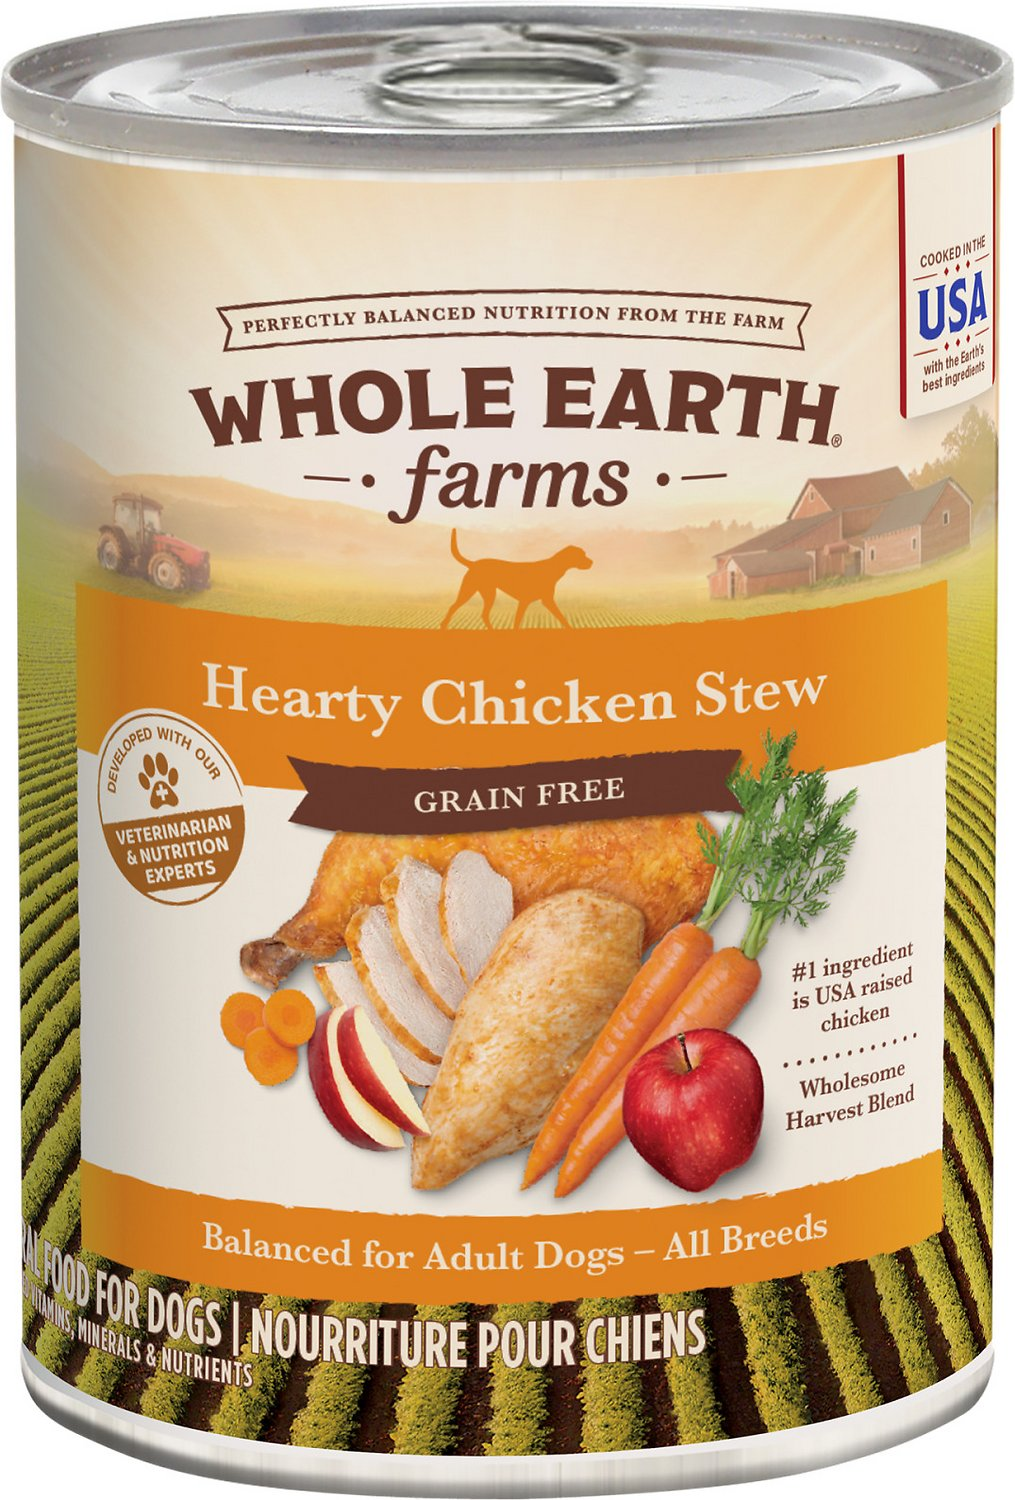 Whole Earth Canned Dog Food Reviews